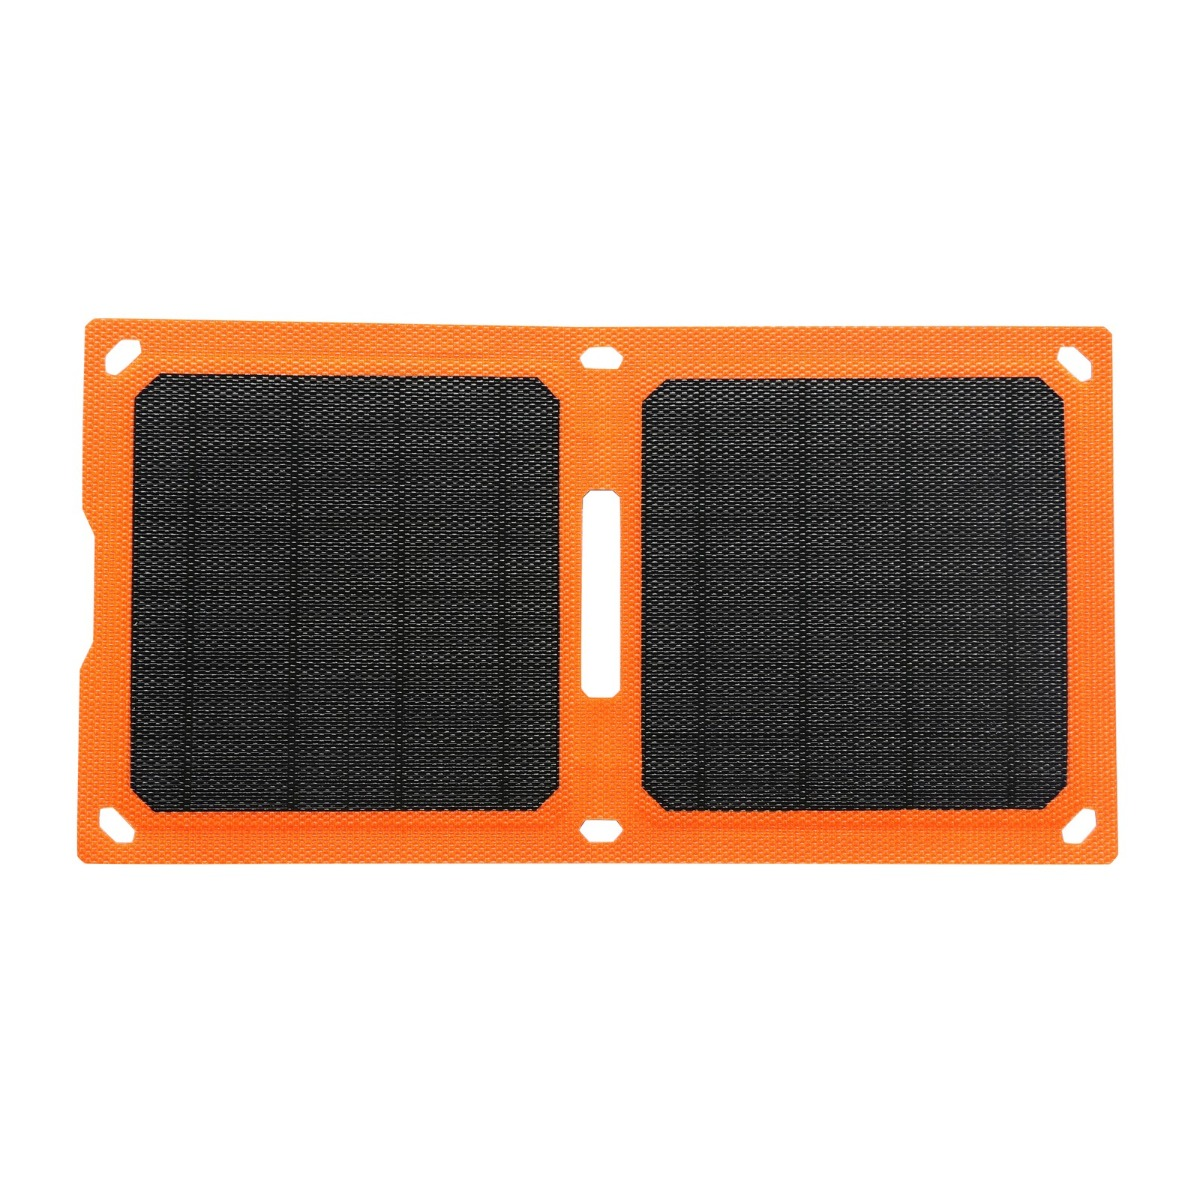 10W Smart flexible Solar Panel Power Bank ETFE Foldable USB Phone Ipad Camera